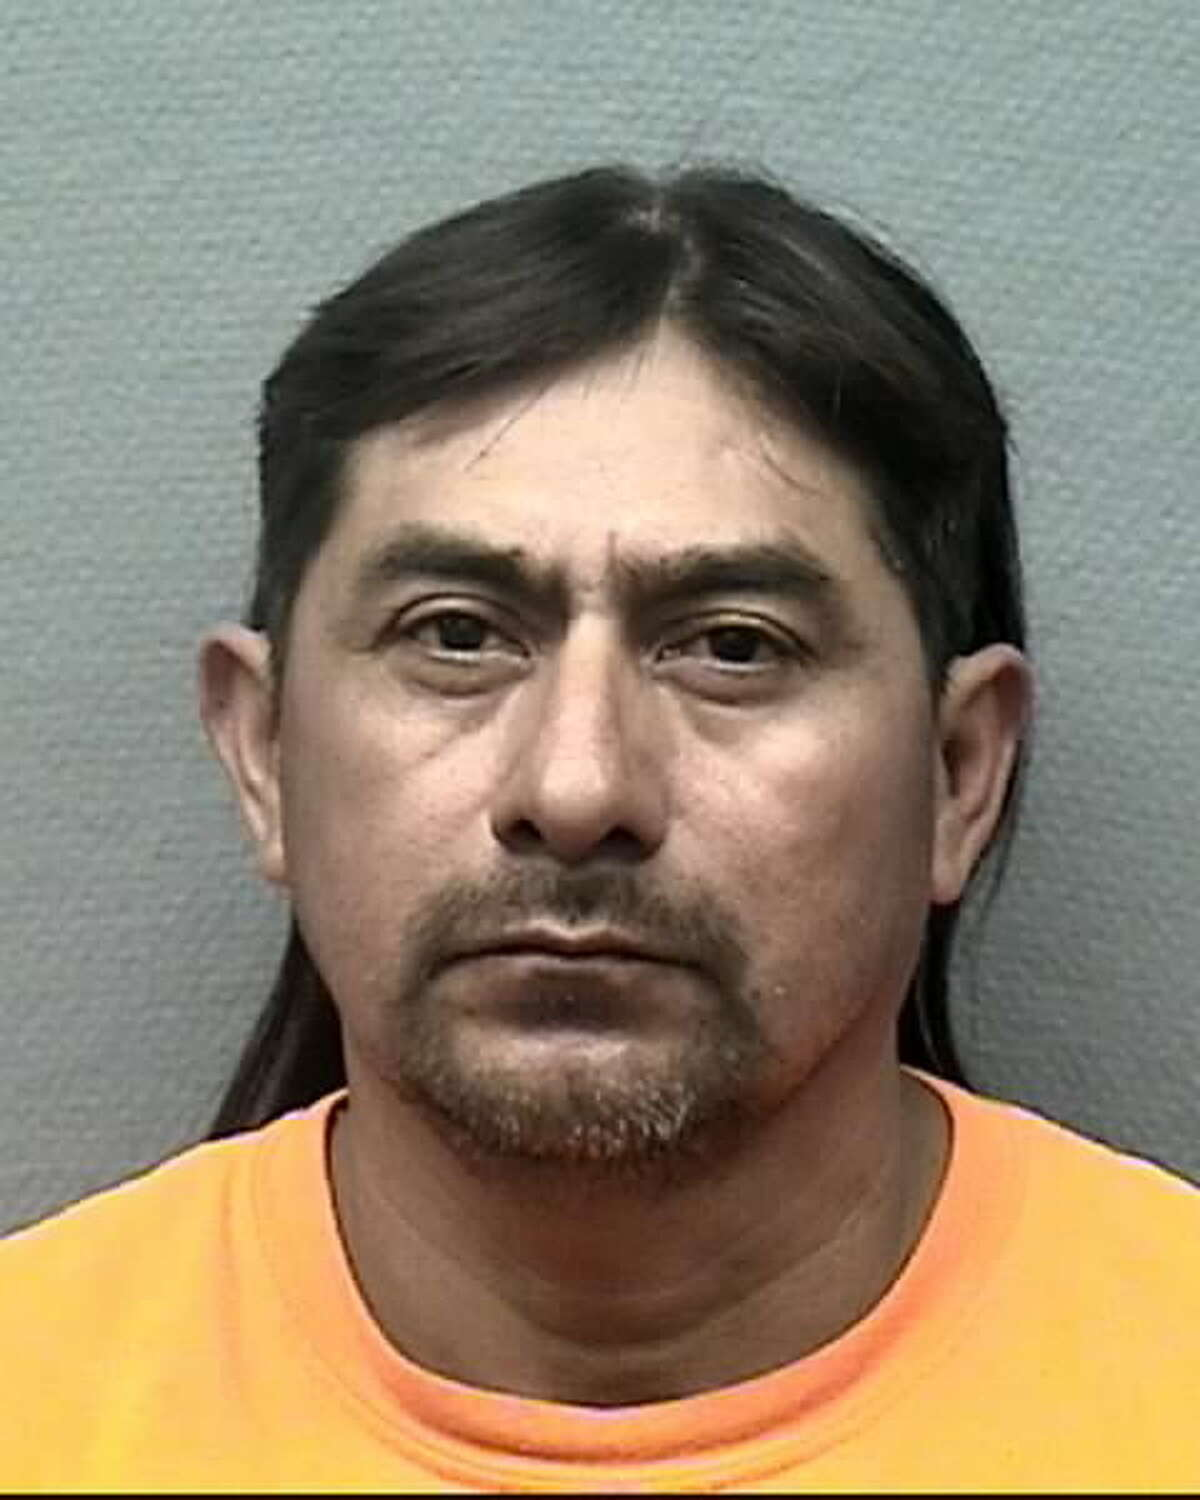 Jose Hernandez, 49, was charged with prostitution following a Houston Police Vice Division initiative Nov. 10, 2015 in northeast Houston.